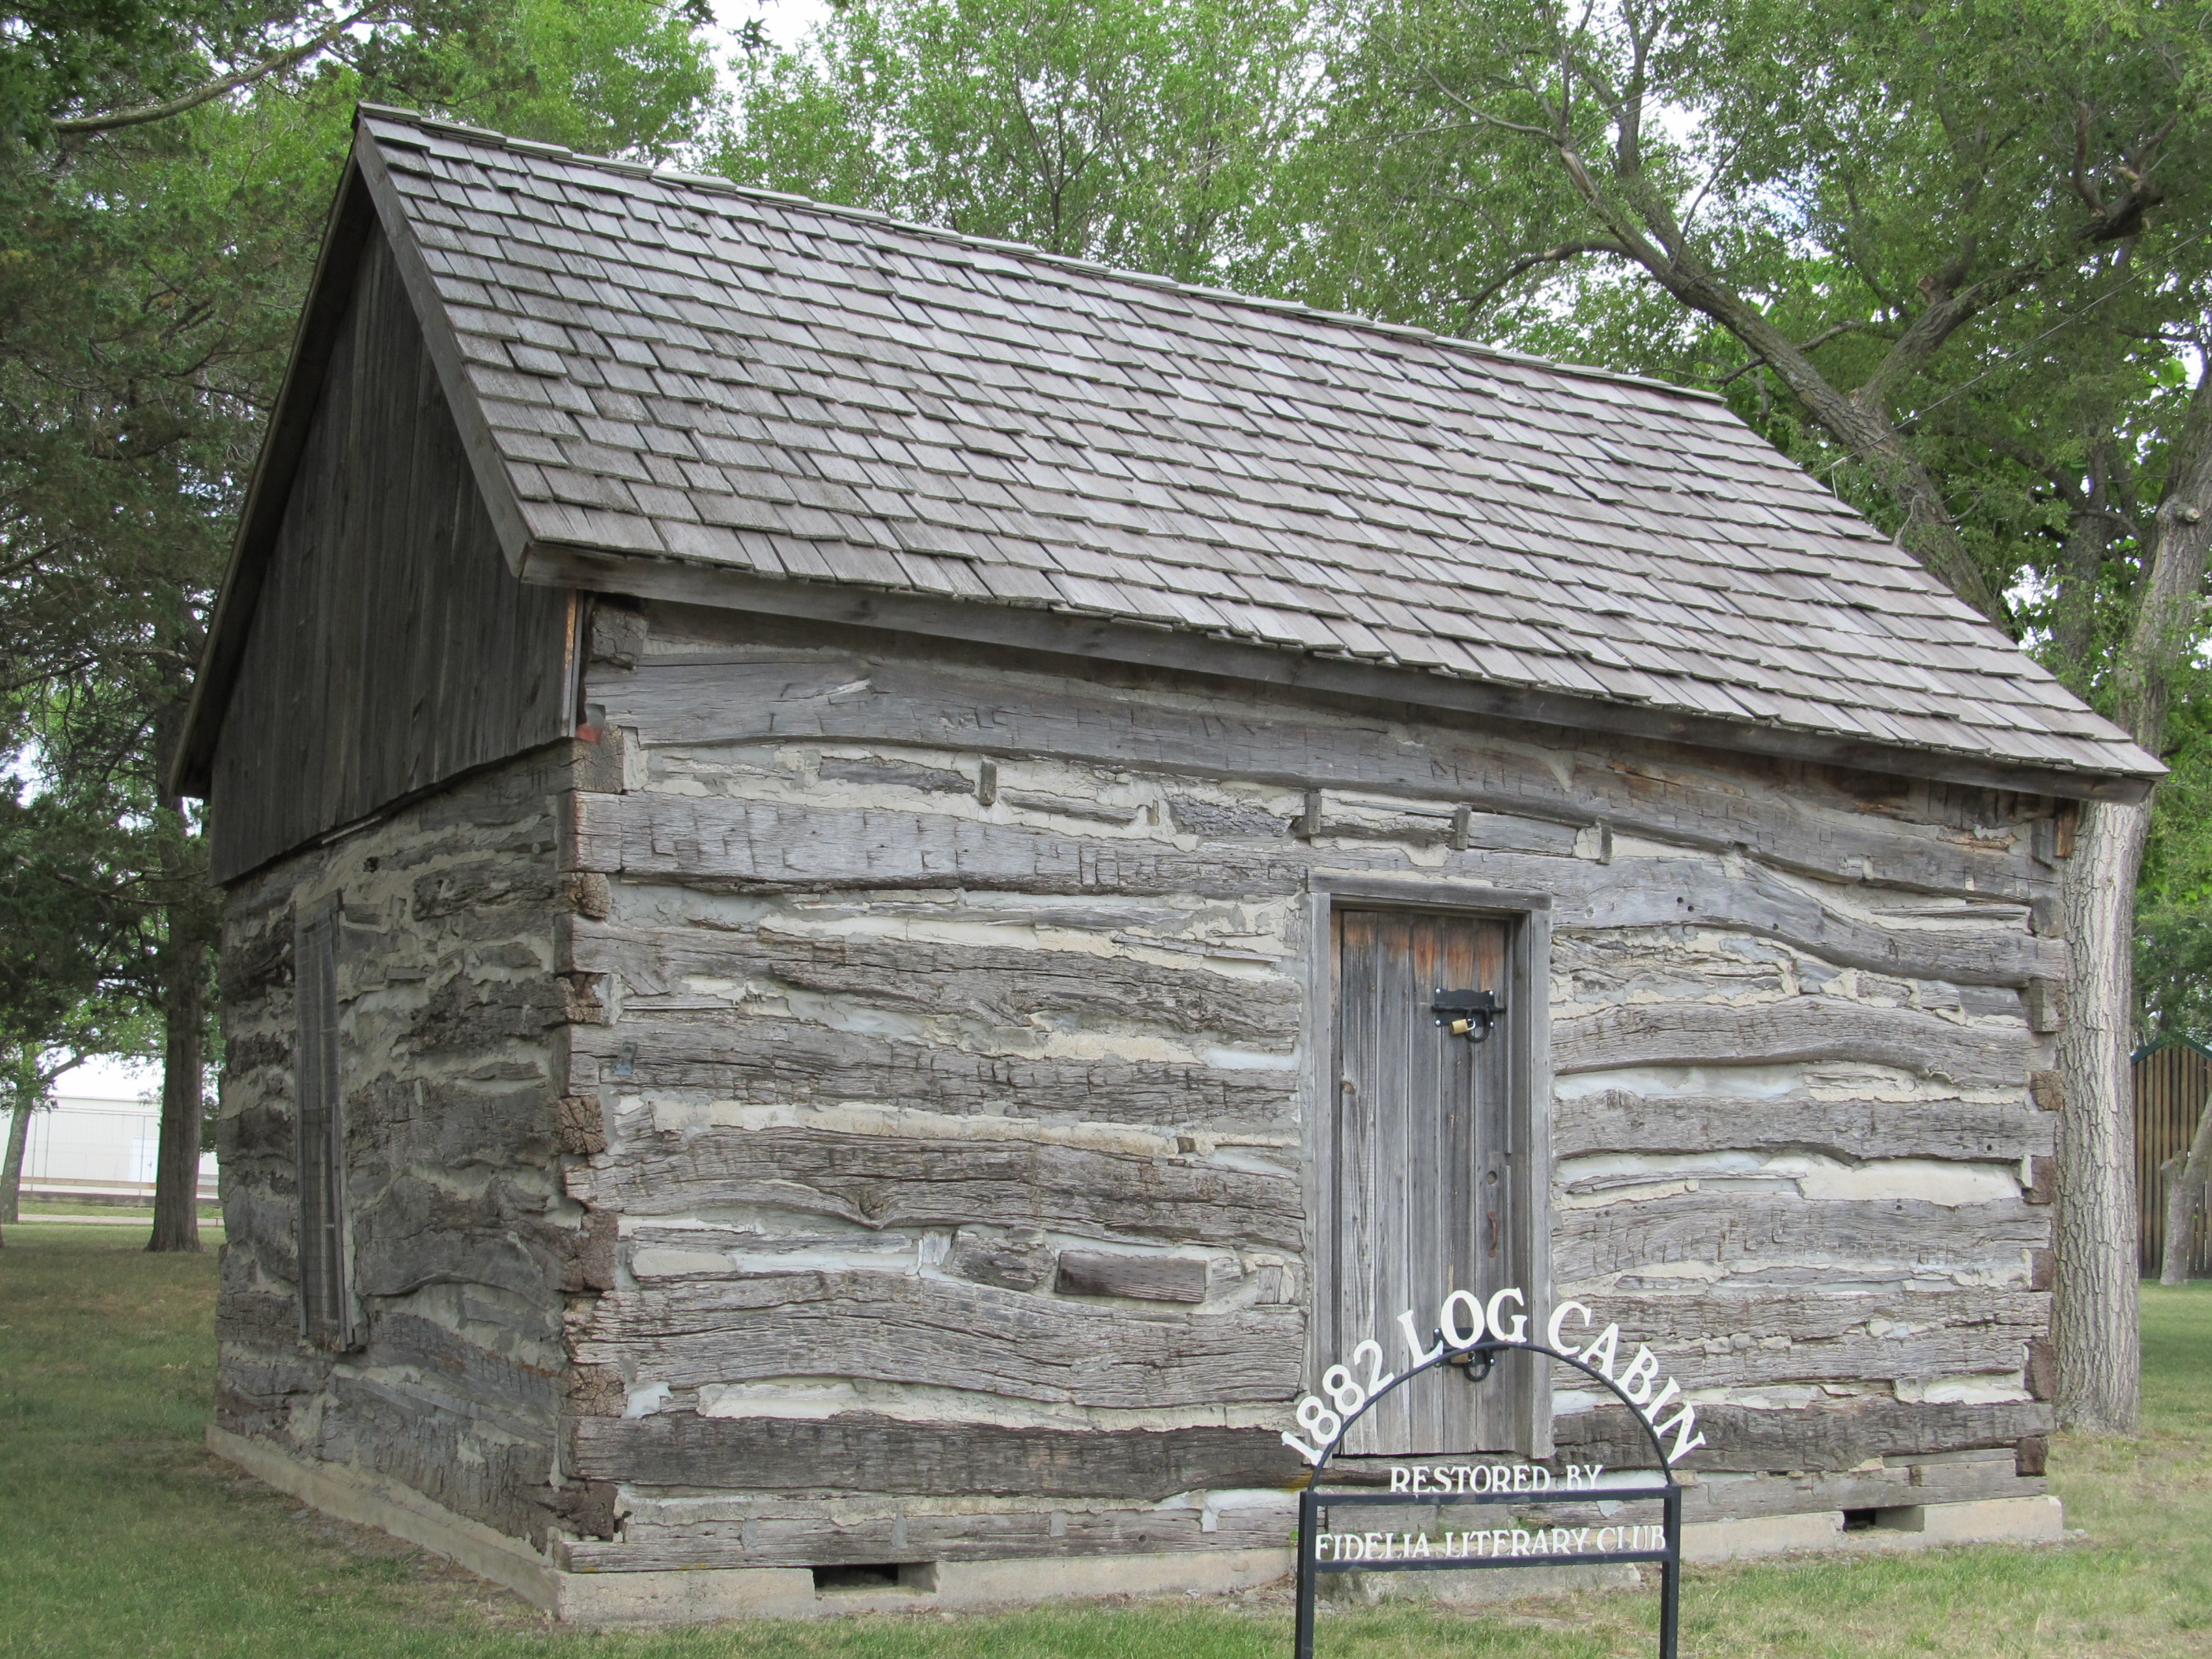 Log House Washington Ks Best Travel Tips Online